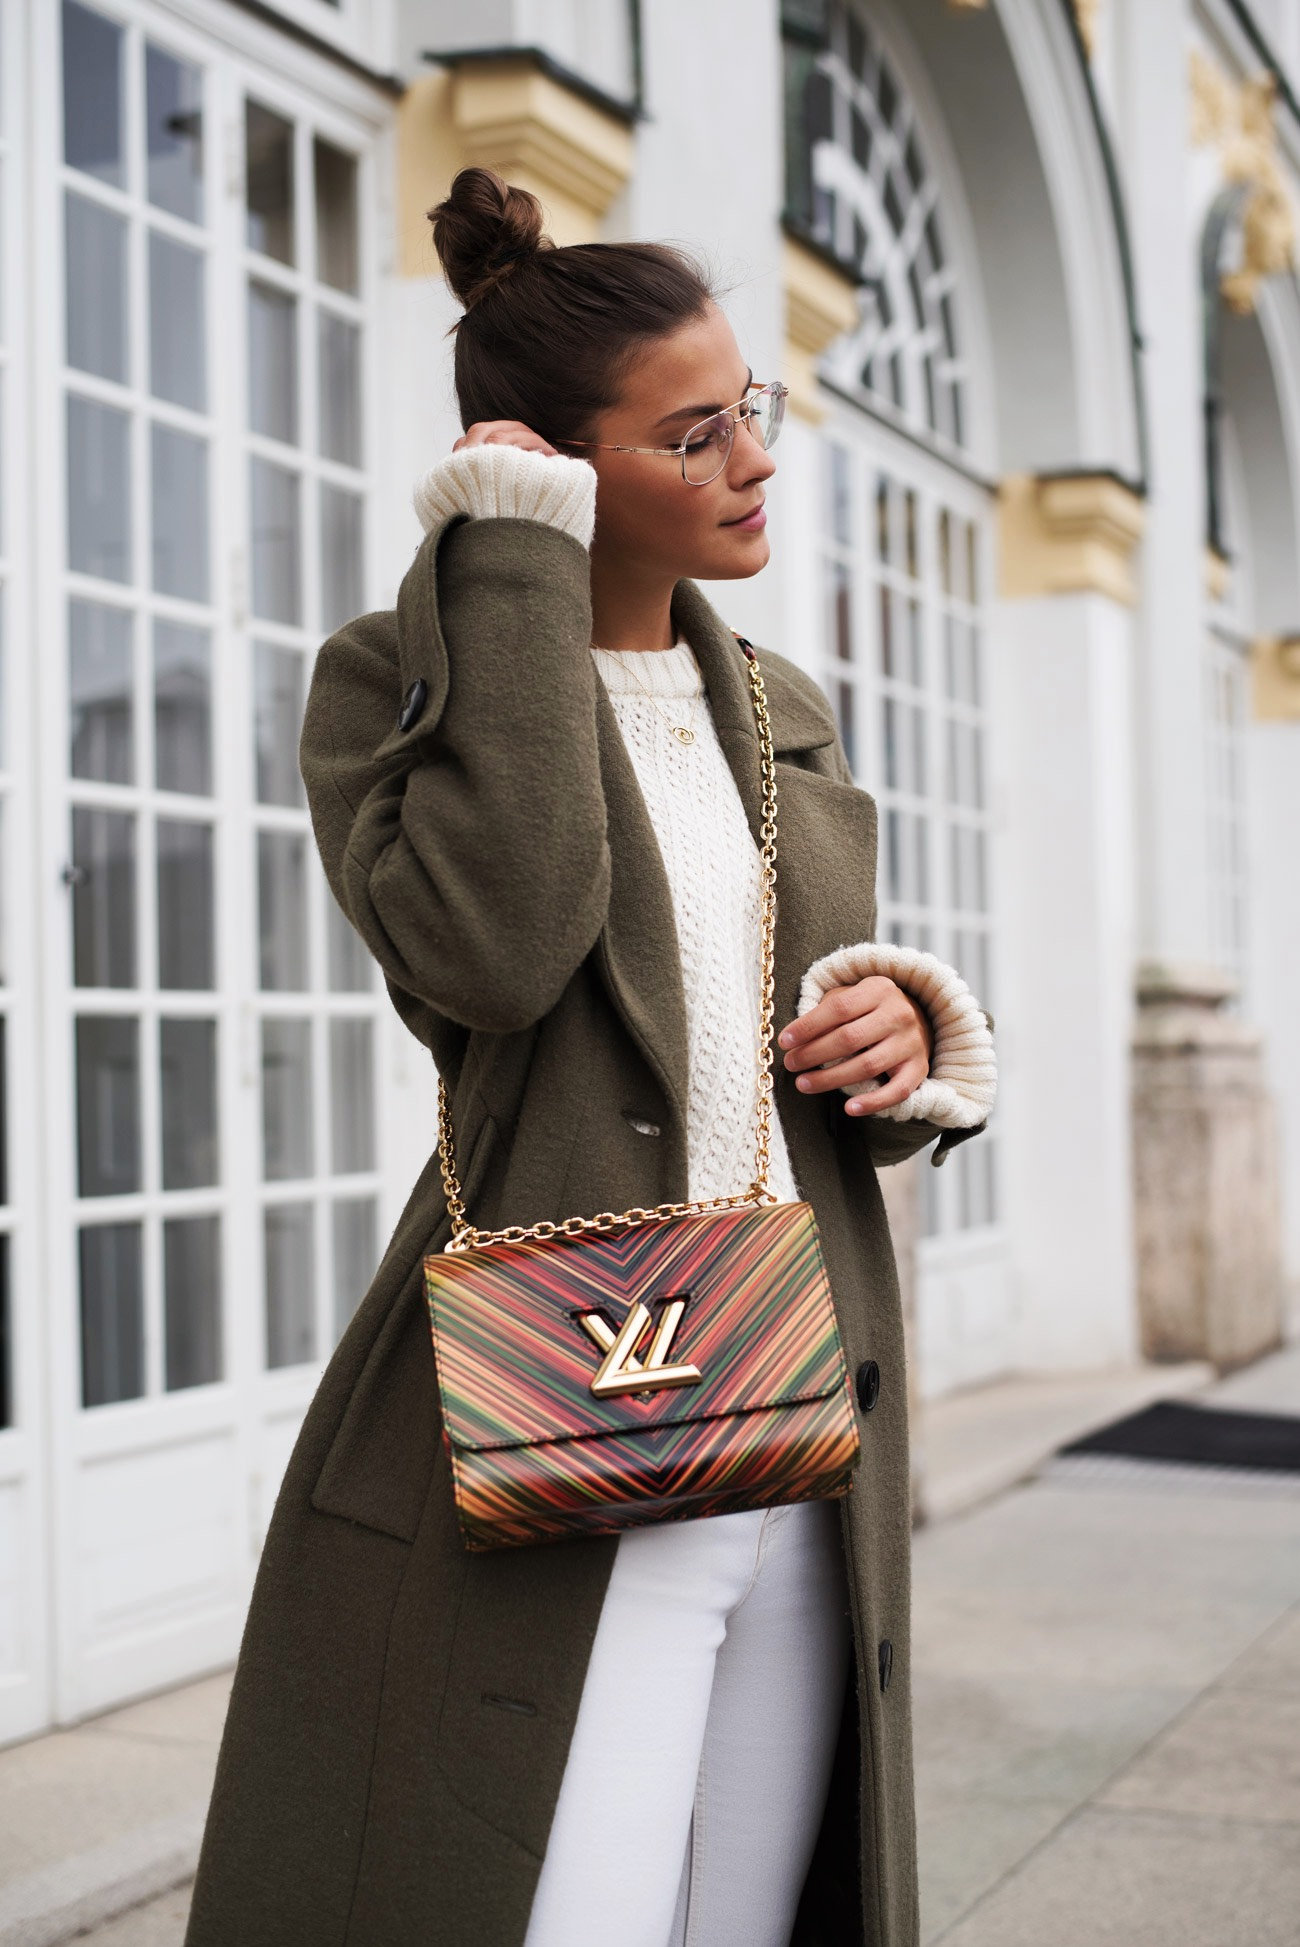 lv-twist-mm-cruise-2016-rose-beige-blogger-streetstyle-fashiioncarpet